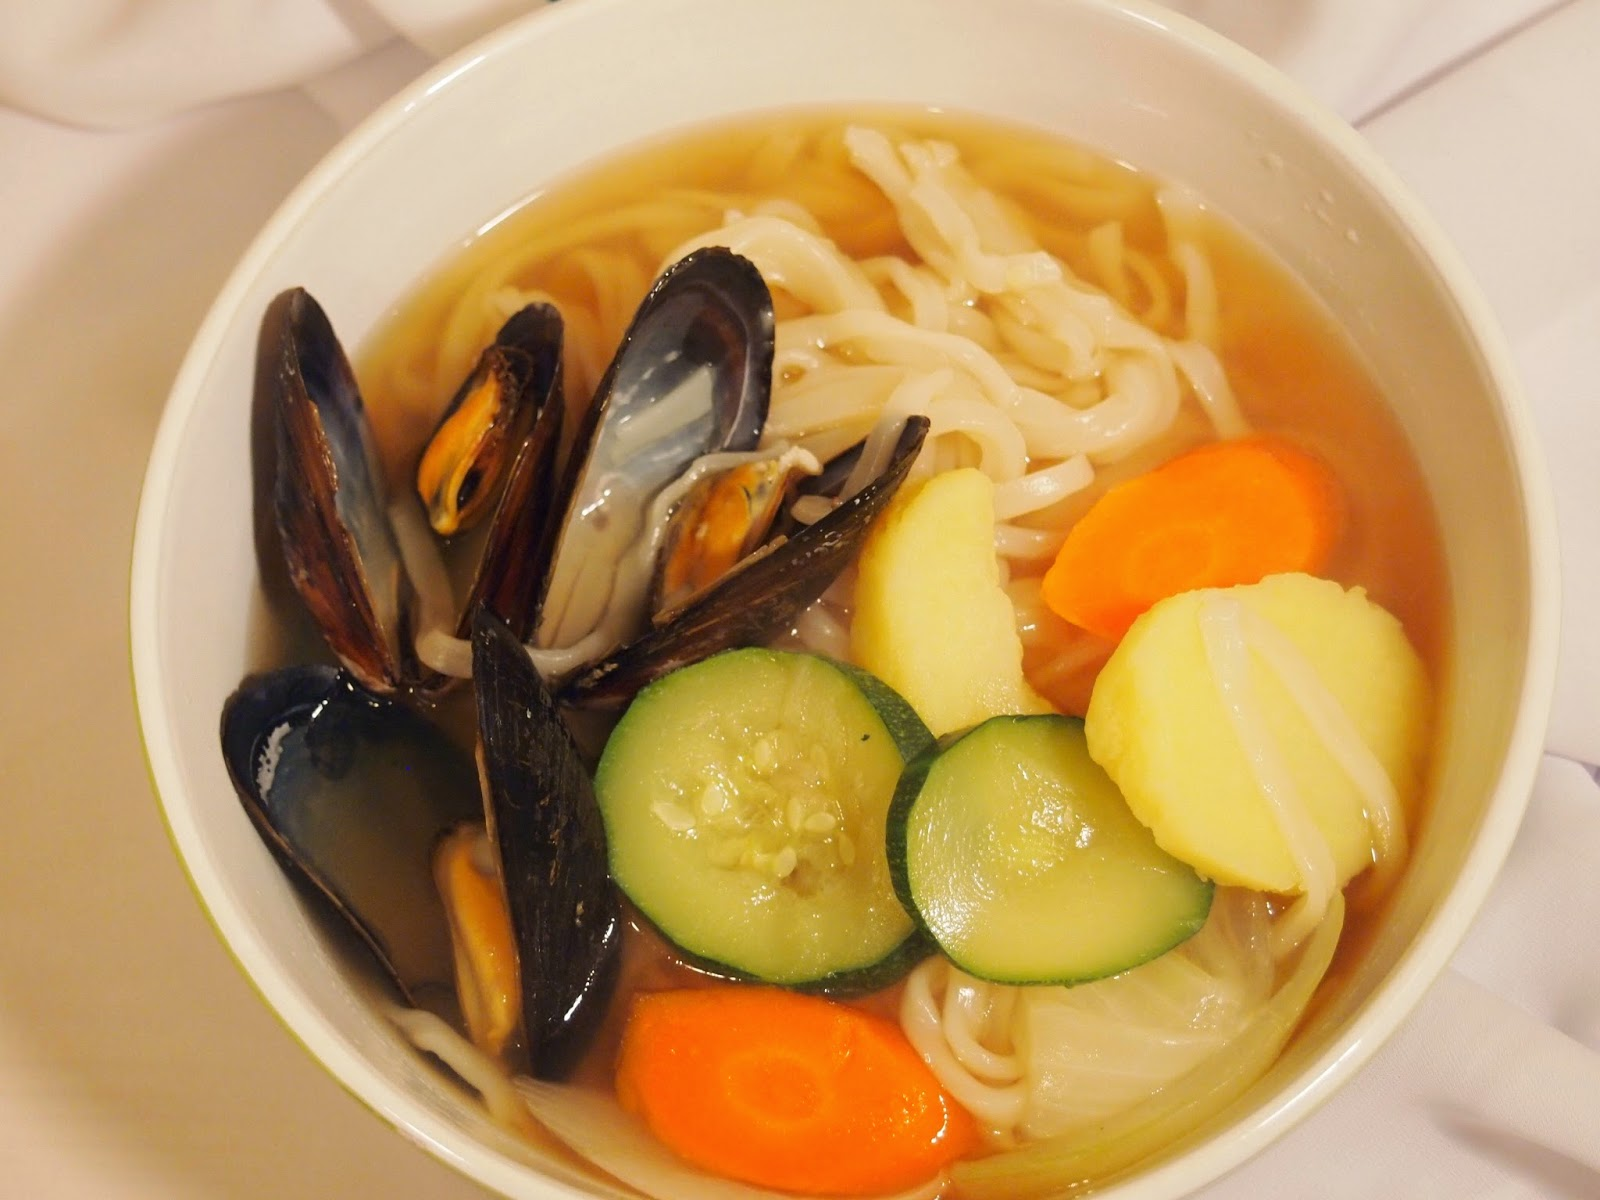 My Korean Table: KalGukSu Korean Mussel and Knife Noodle Soup